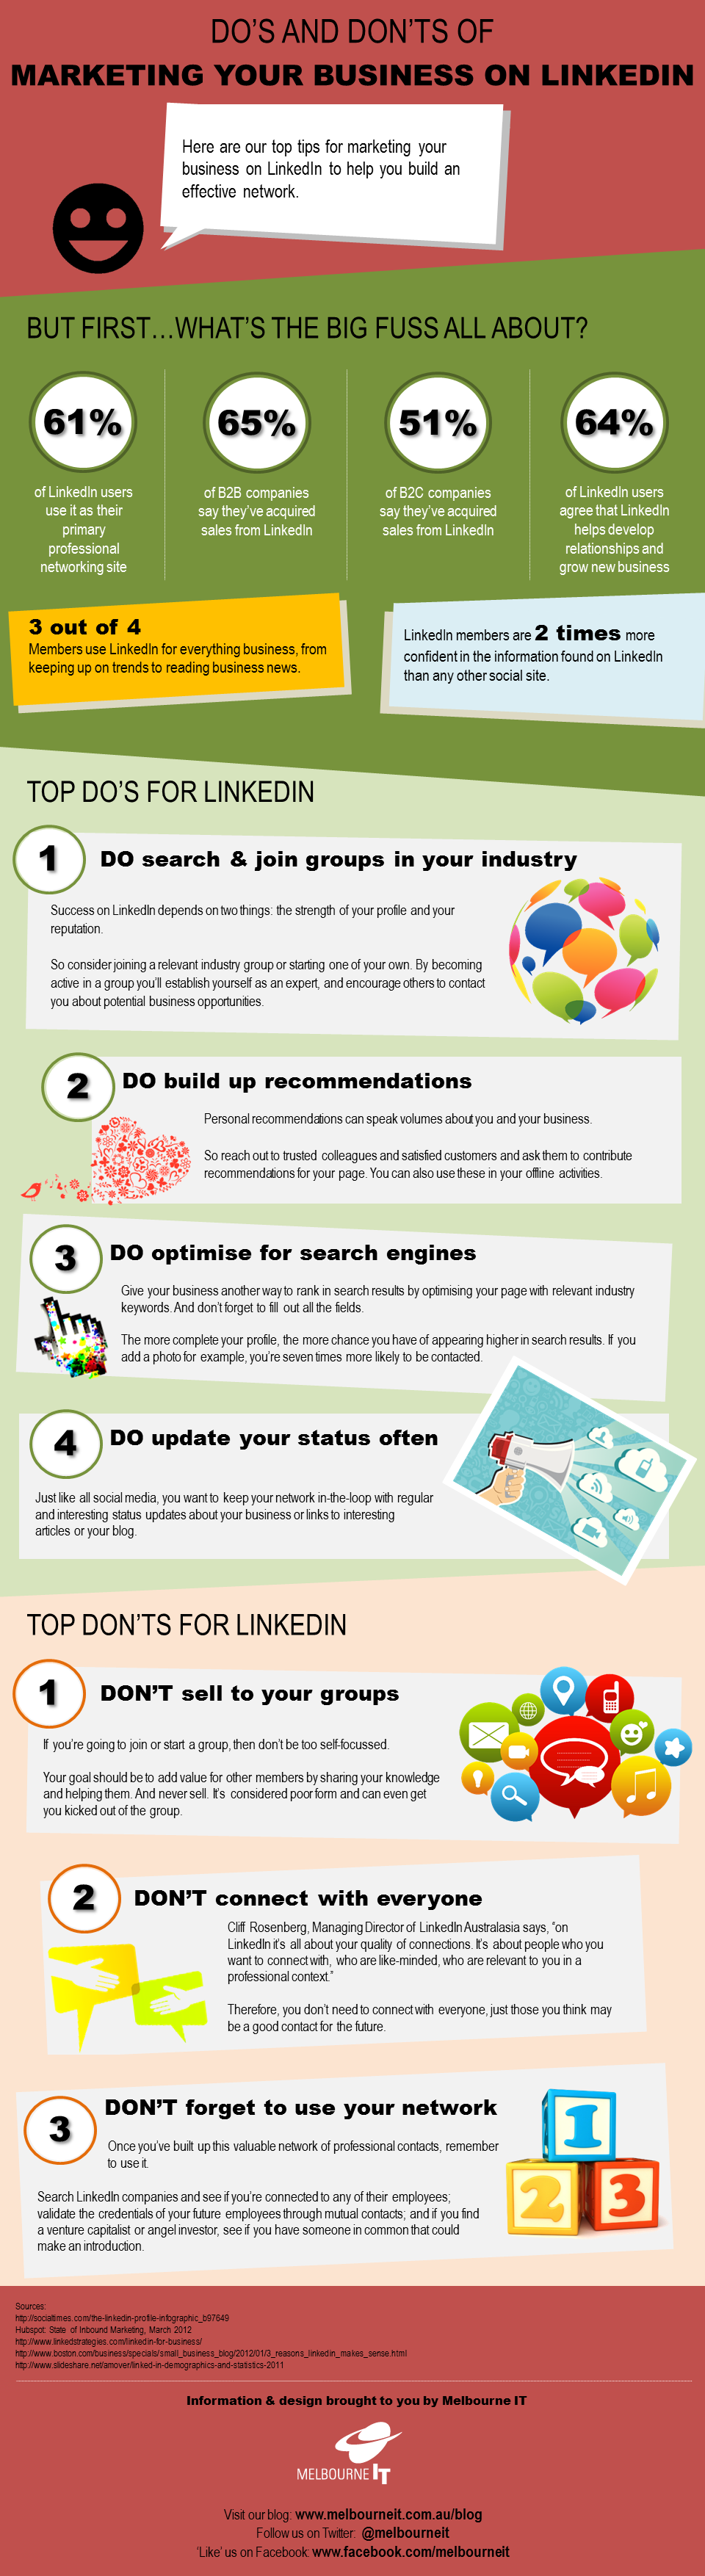 Do's and Don'ts of #Marketing Your Business on #LinkedIn